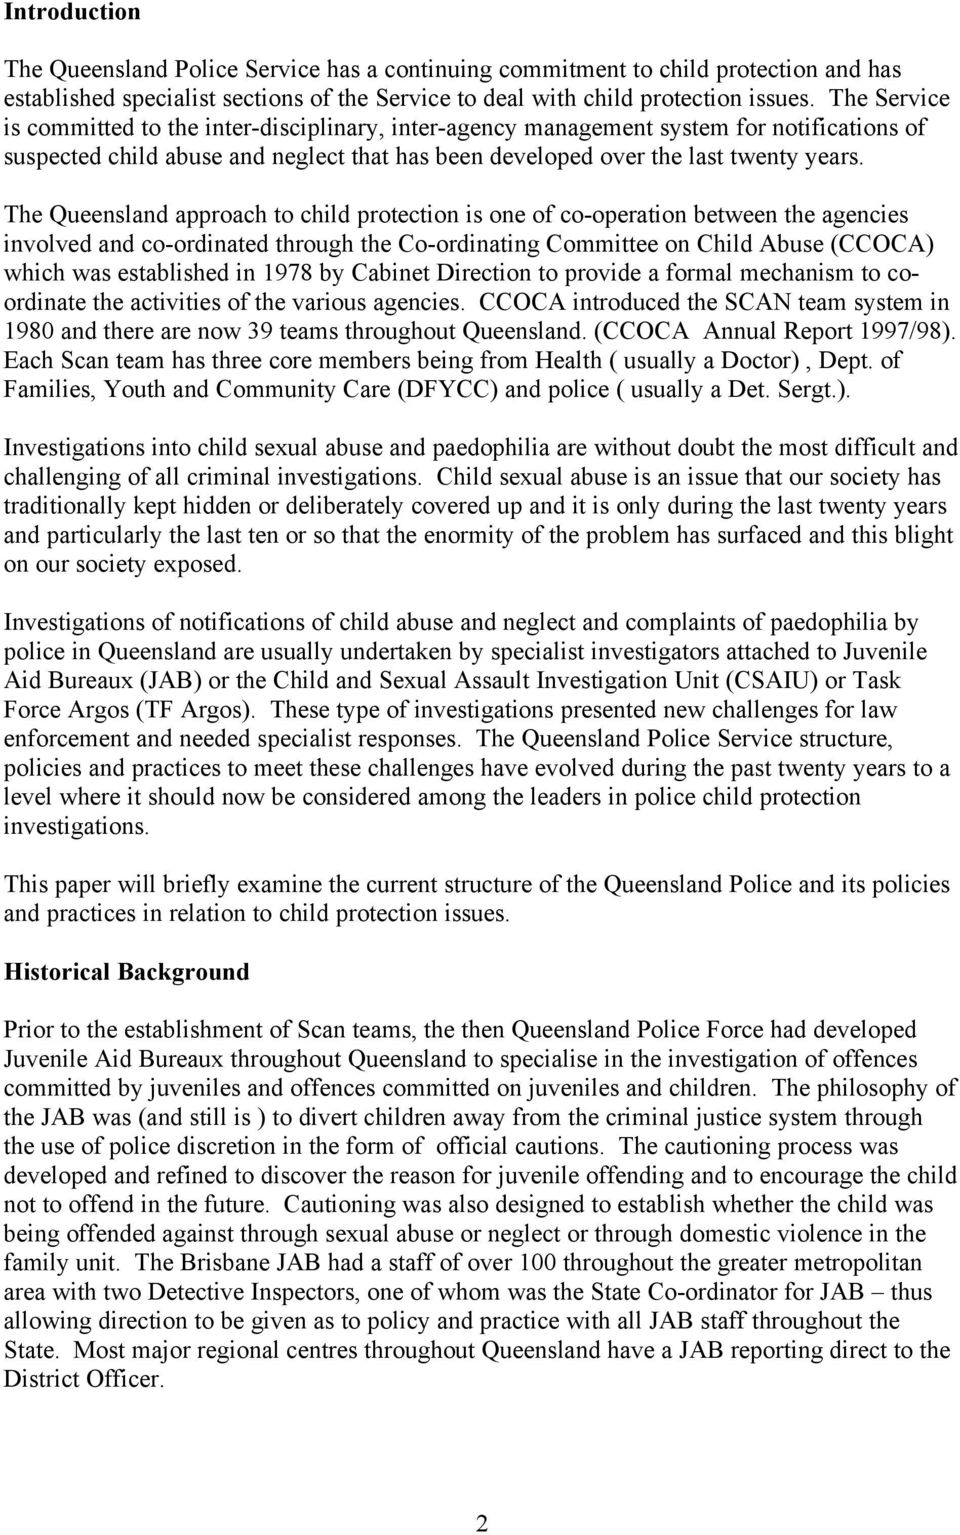 The Queensland approach to child protection is one of co-operation between the agencies involved and co-ordinated through the Co-ordinating Committee on Child Abuse (CCOCA) which was established in